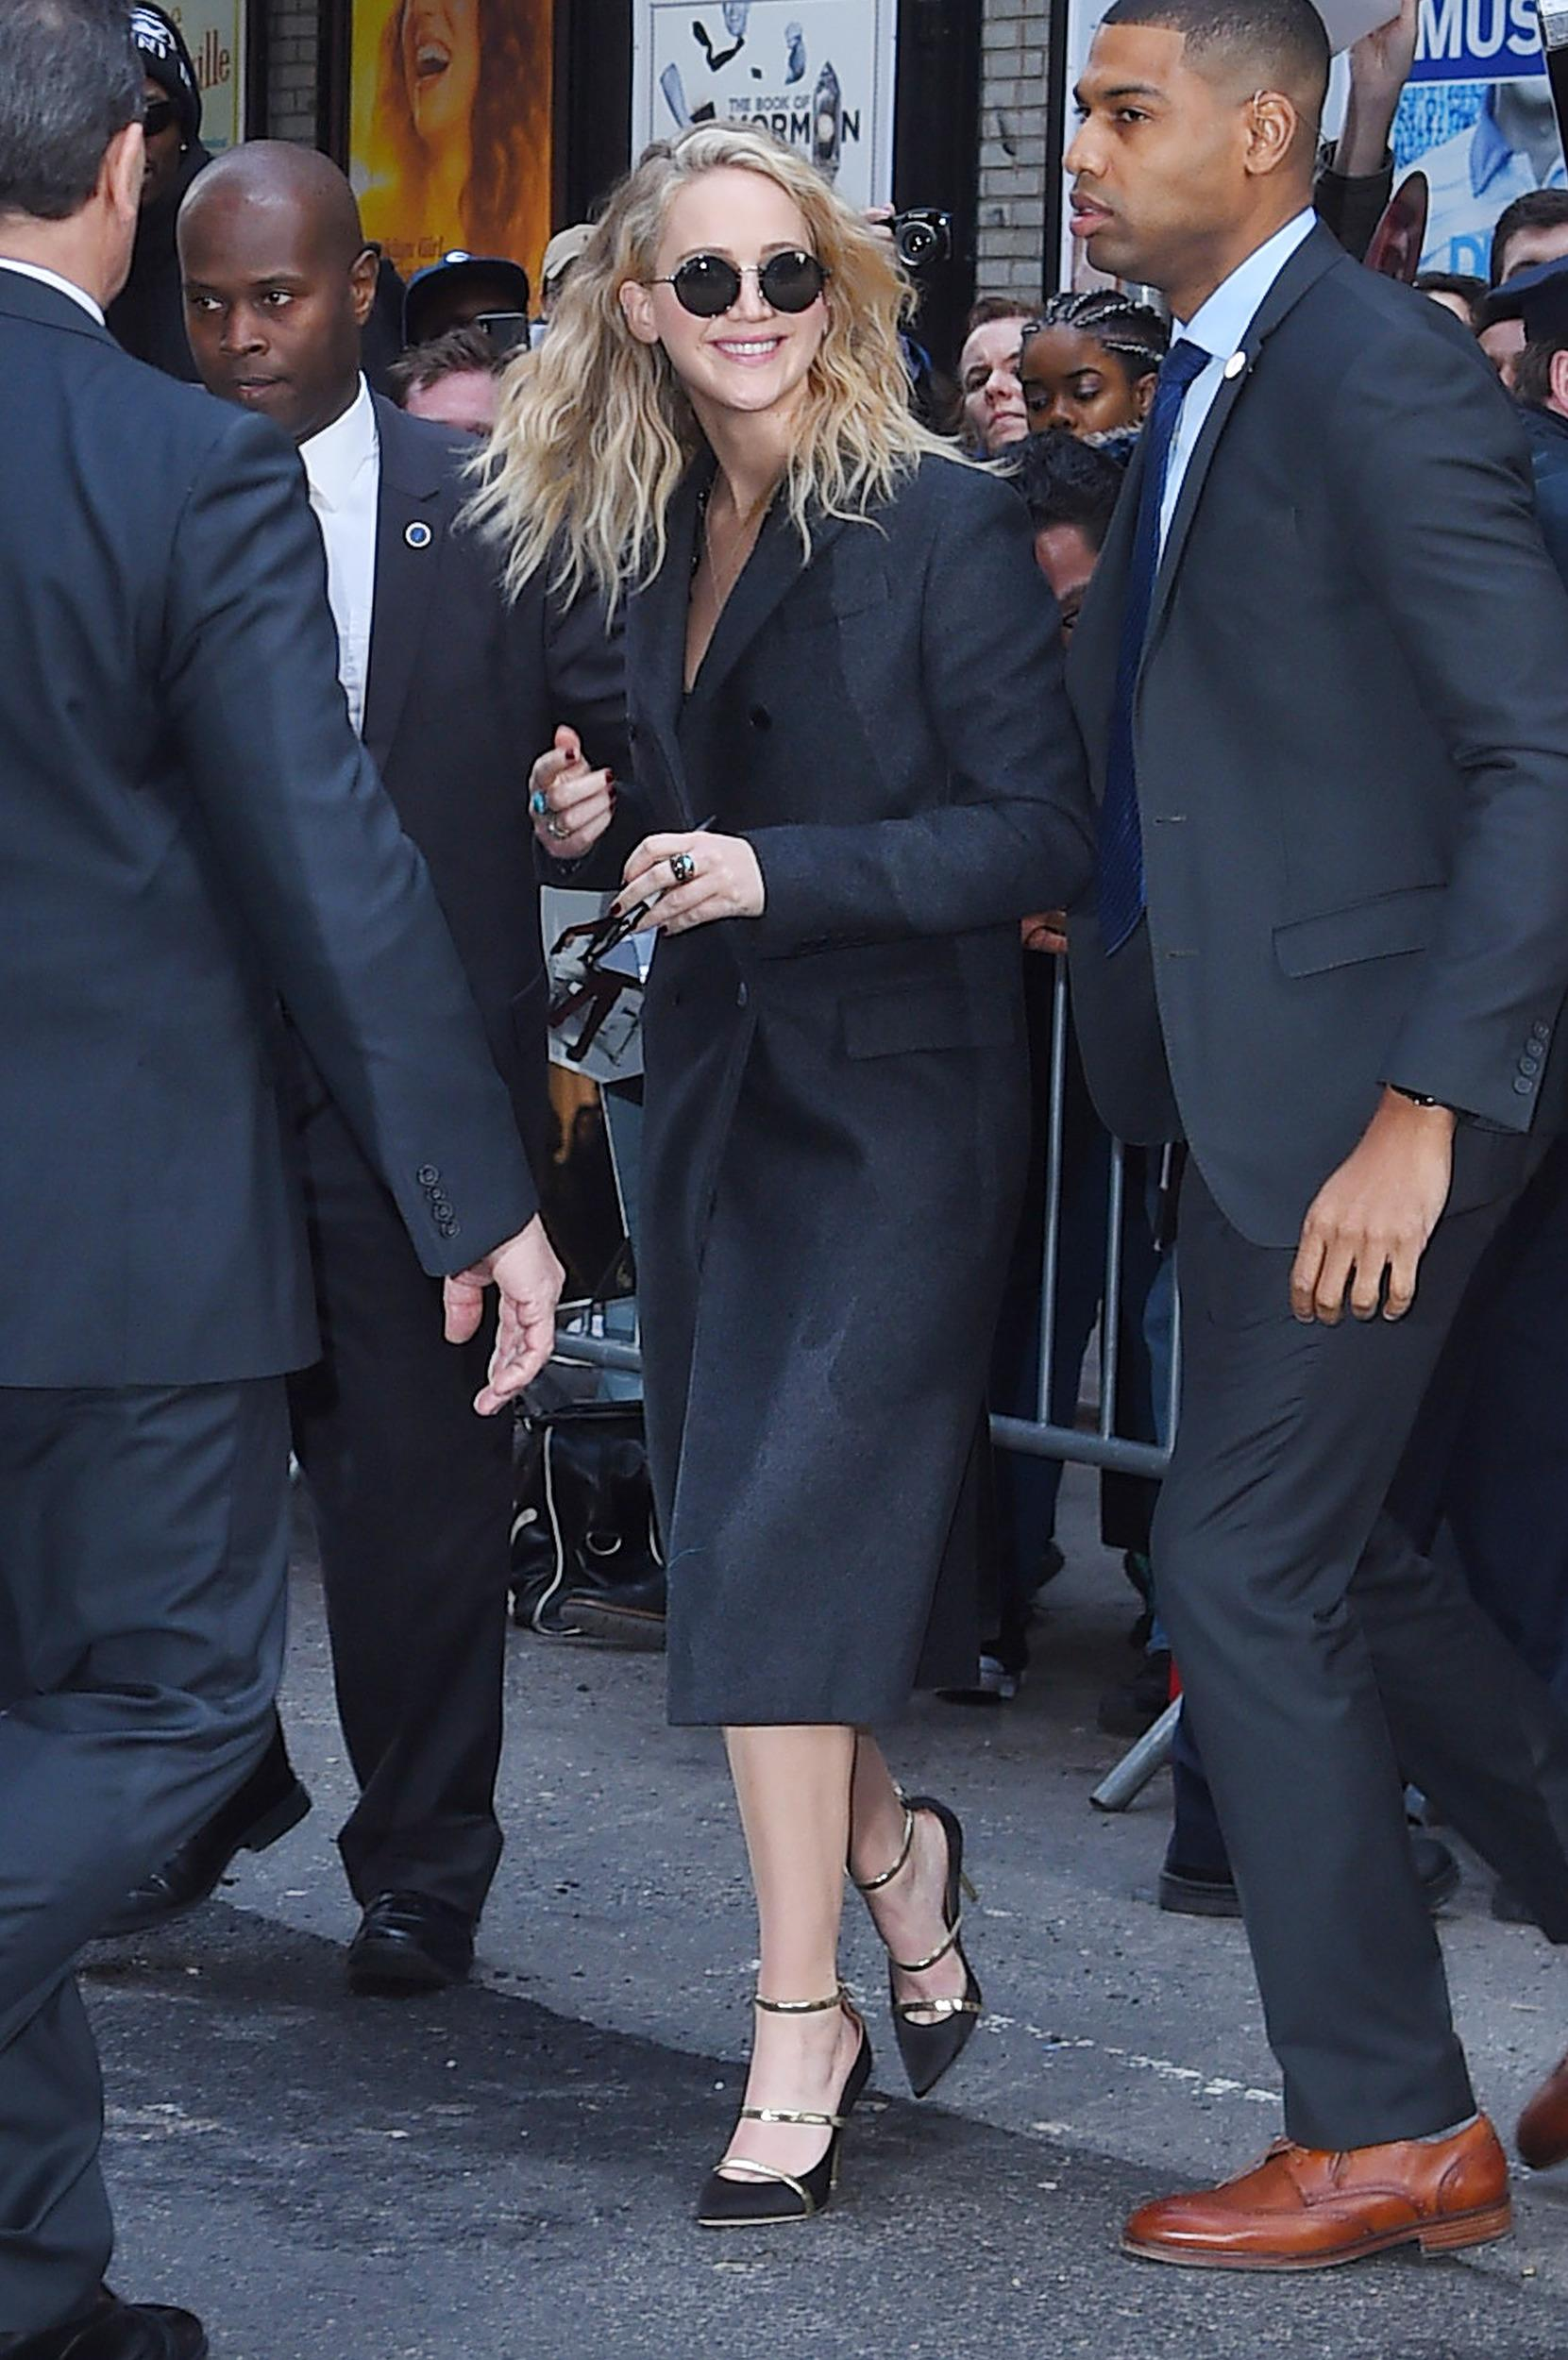 NEW YORK, NY - FEBRUARY 26: Jennifer Lawrence seen on the streets of  Manhattan on February 26, 2018 in New York City. (Photo by Josiah Kamau/BuzzFoto via Getty Images)